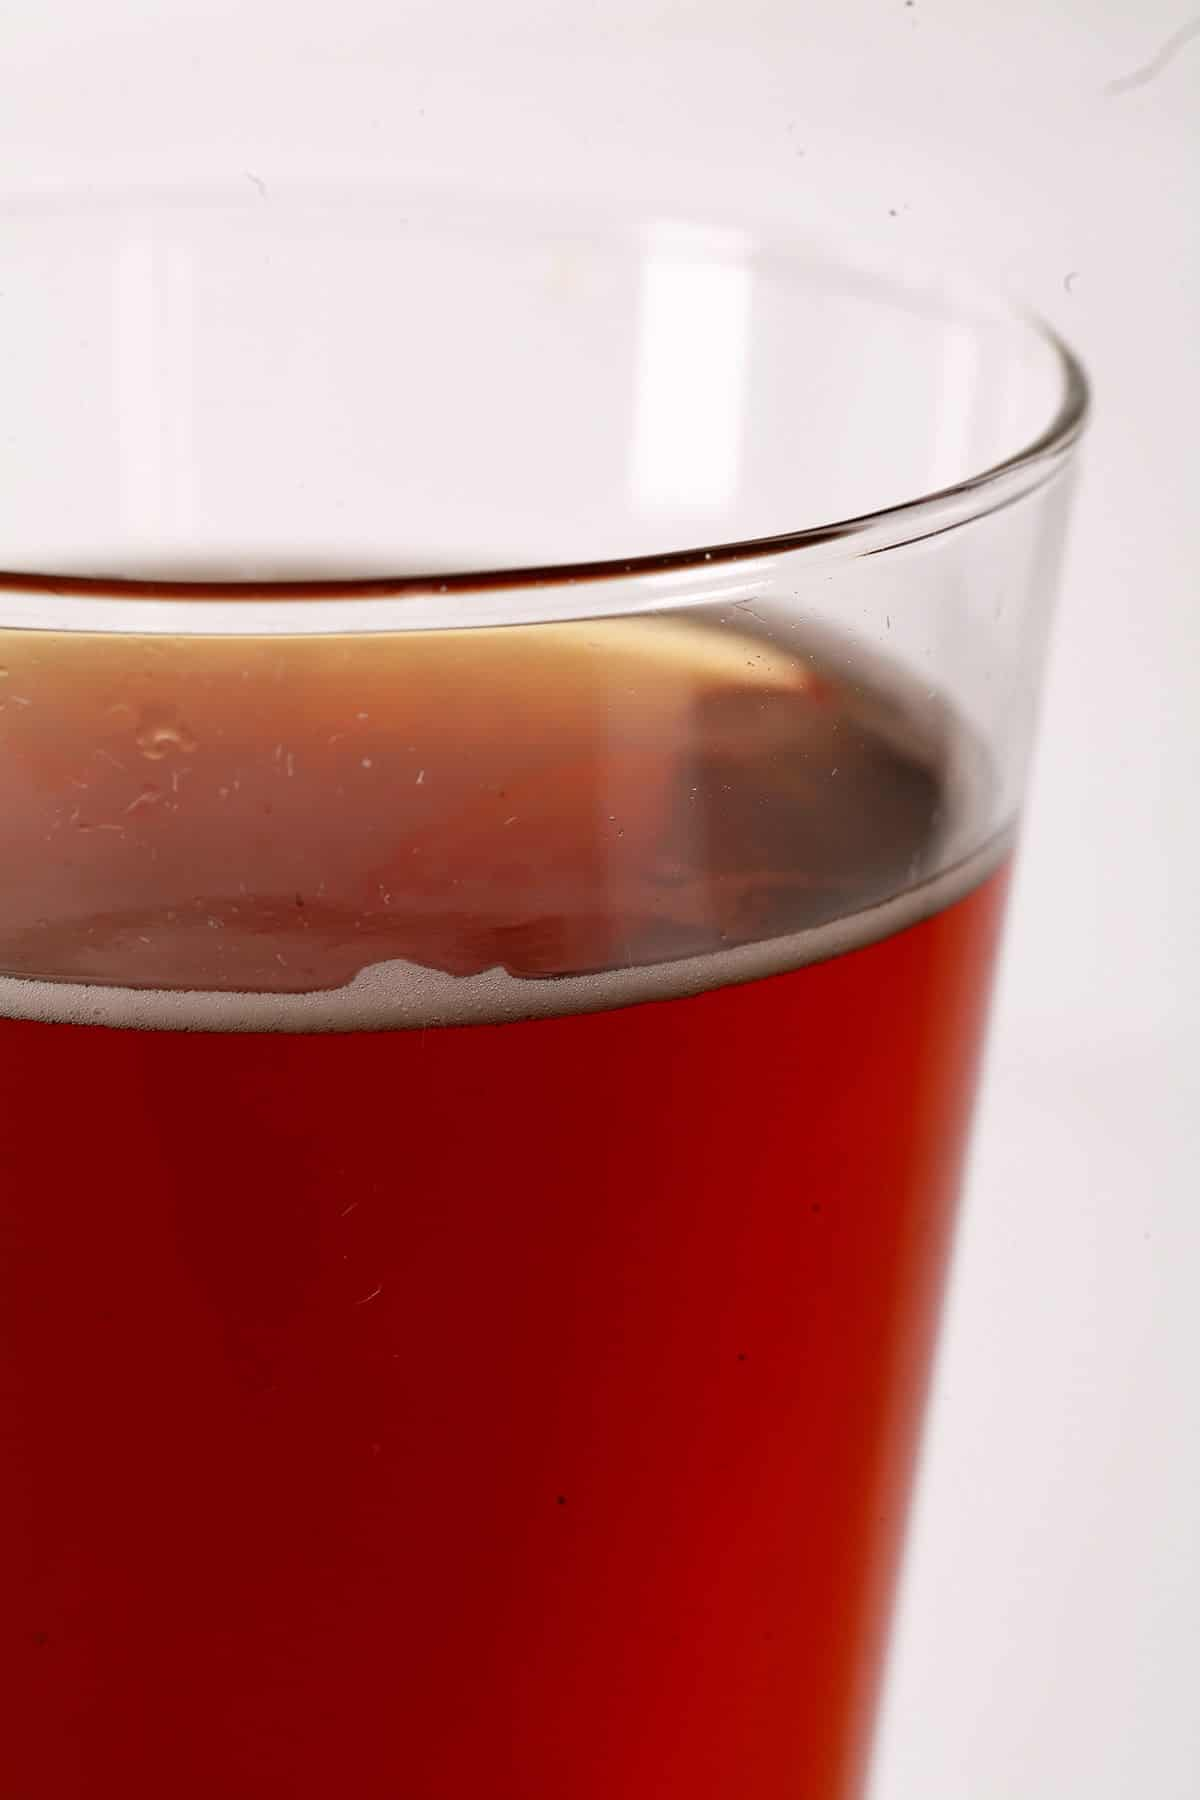 Photo of a tall glass of deep amber apple cider.